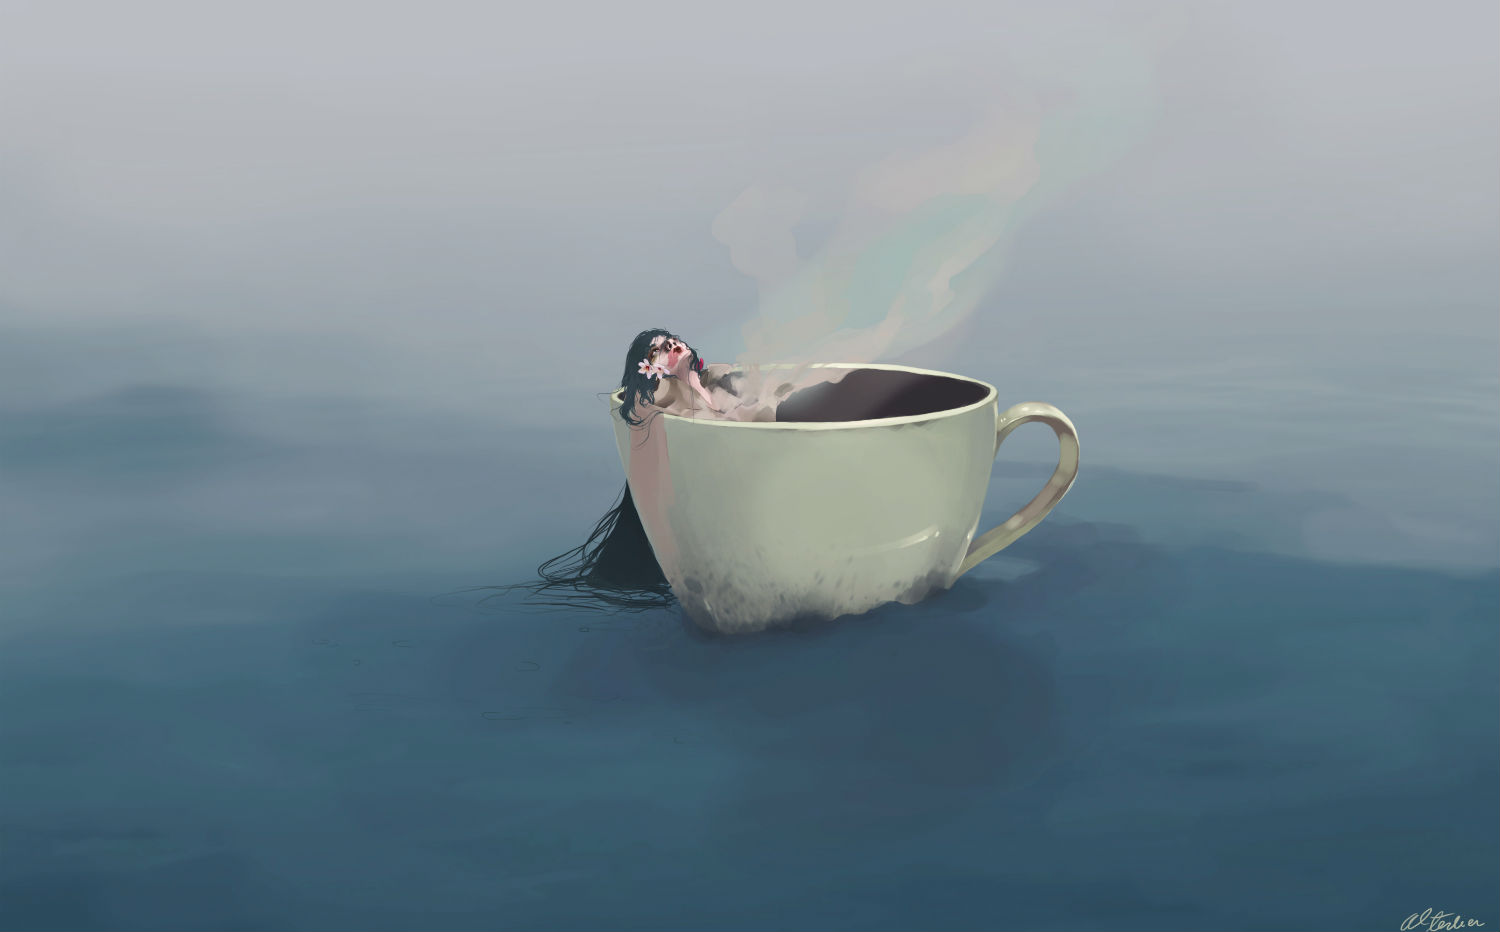 Carolina Rodriguez Fuenmayor illustration surreal colour dreamy tea cup